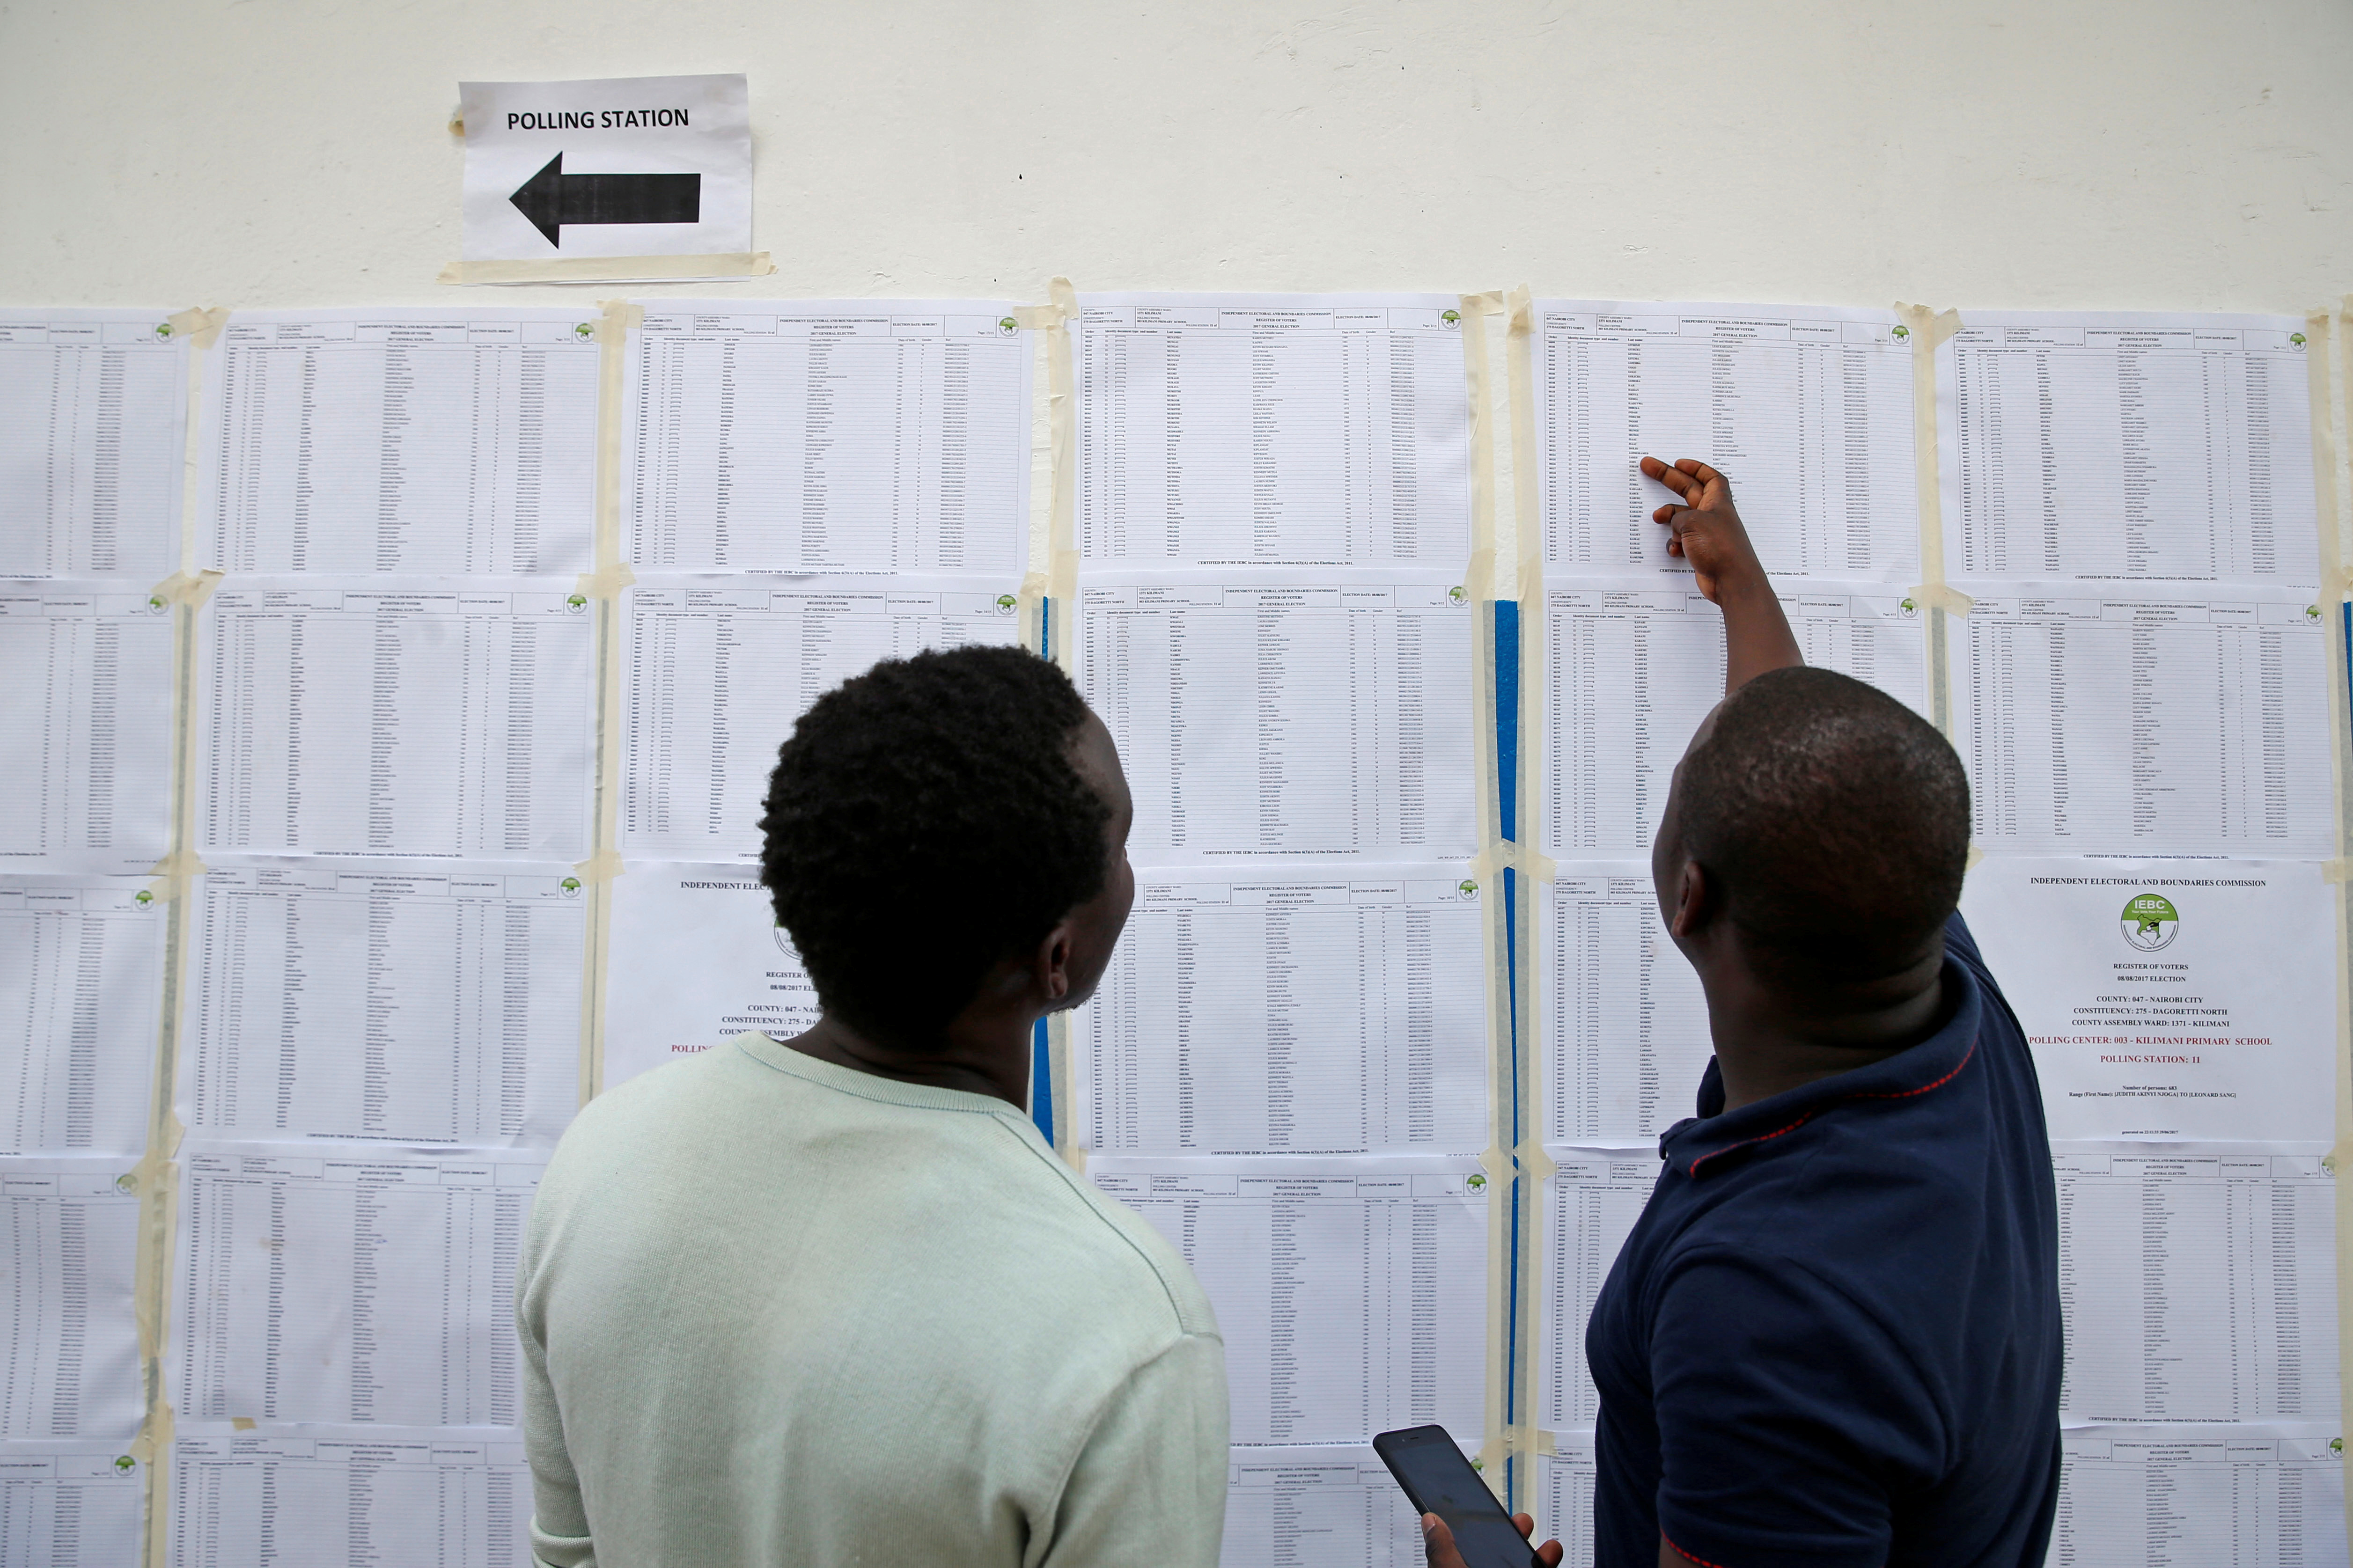 Voters search for their names on an electorate list near a polling station ahead of the presidential election, in Nairobi, Kenya August 7, 2017.